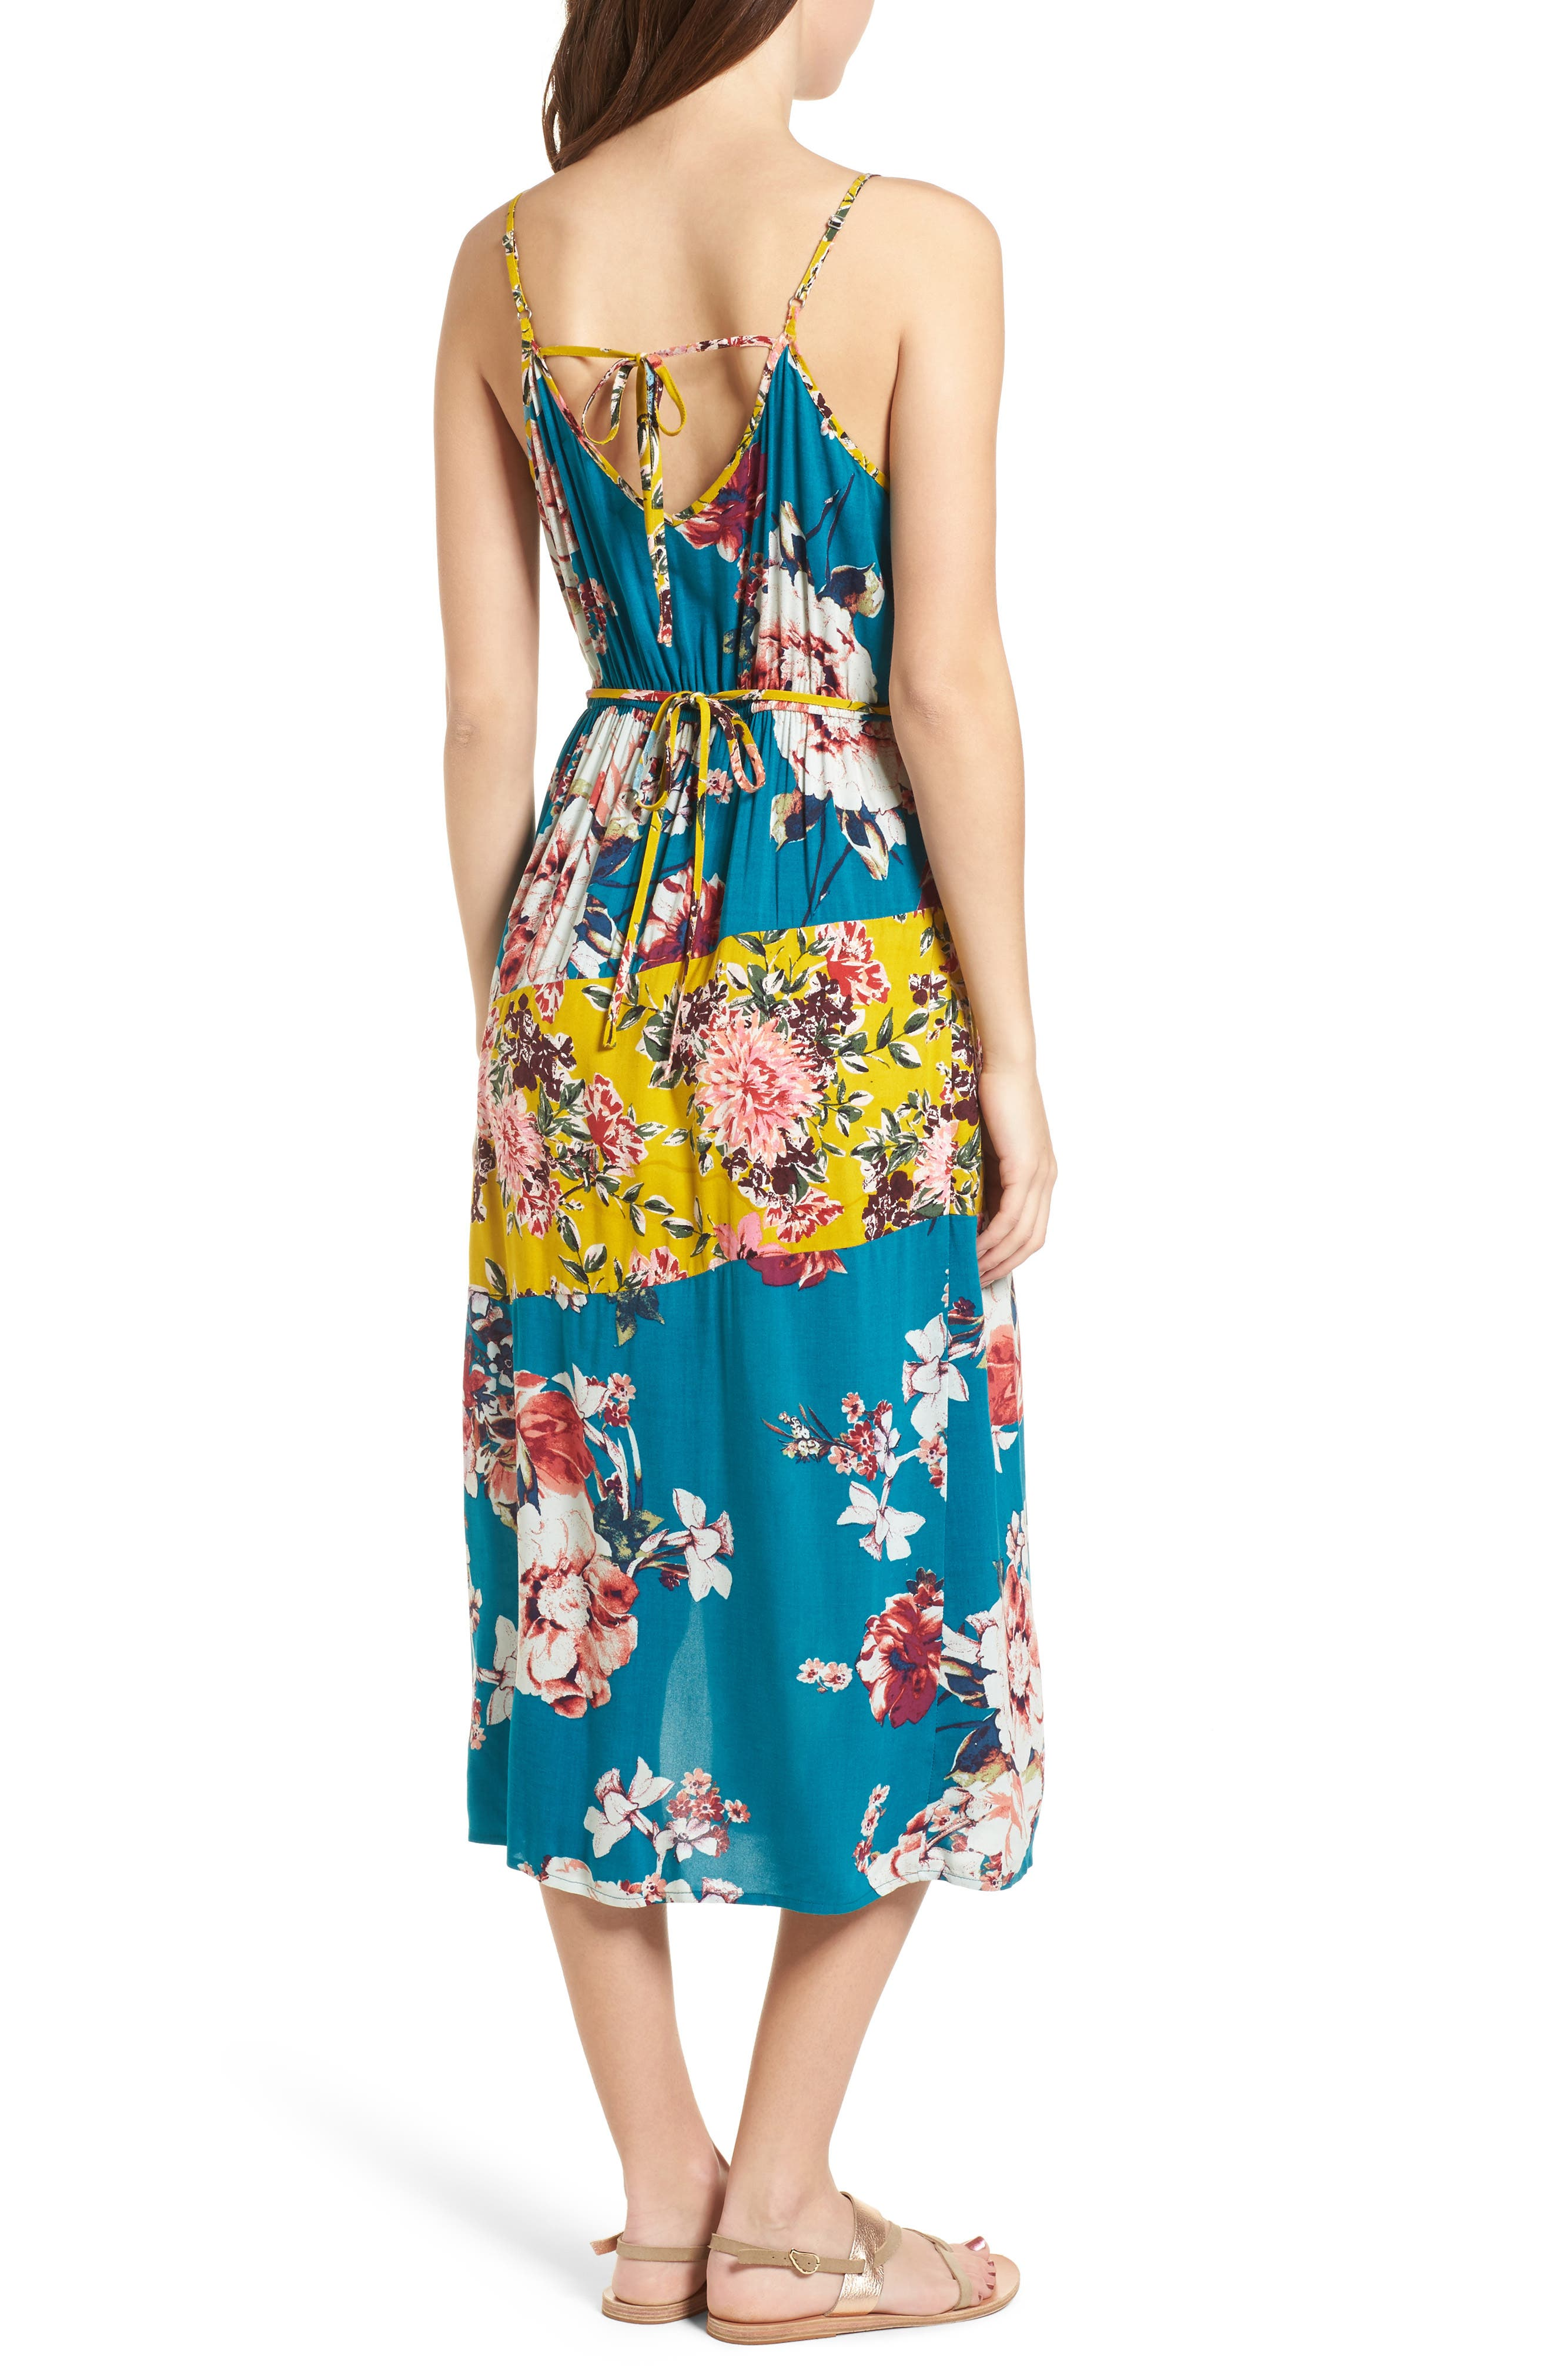 Mix Floral Midi Dress,                             Alternate thumbnail 2, color,                             Teal/ Peach